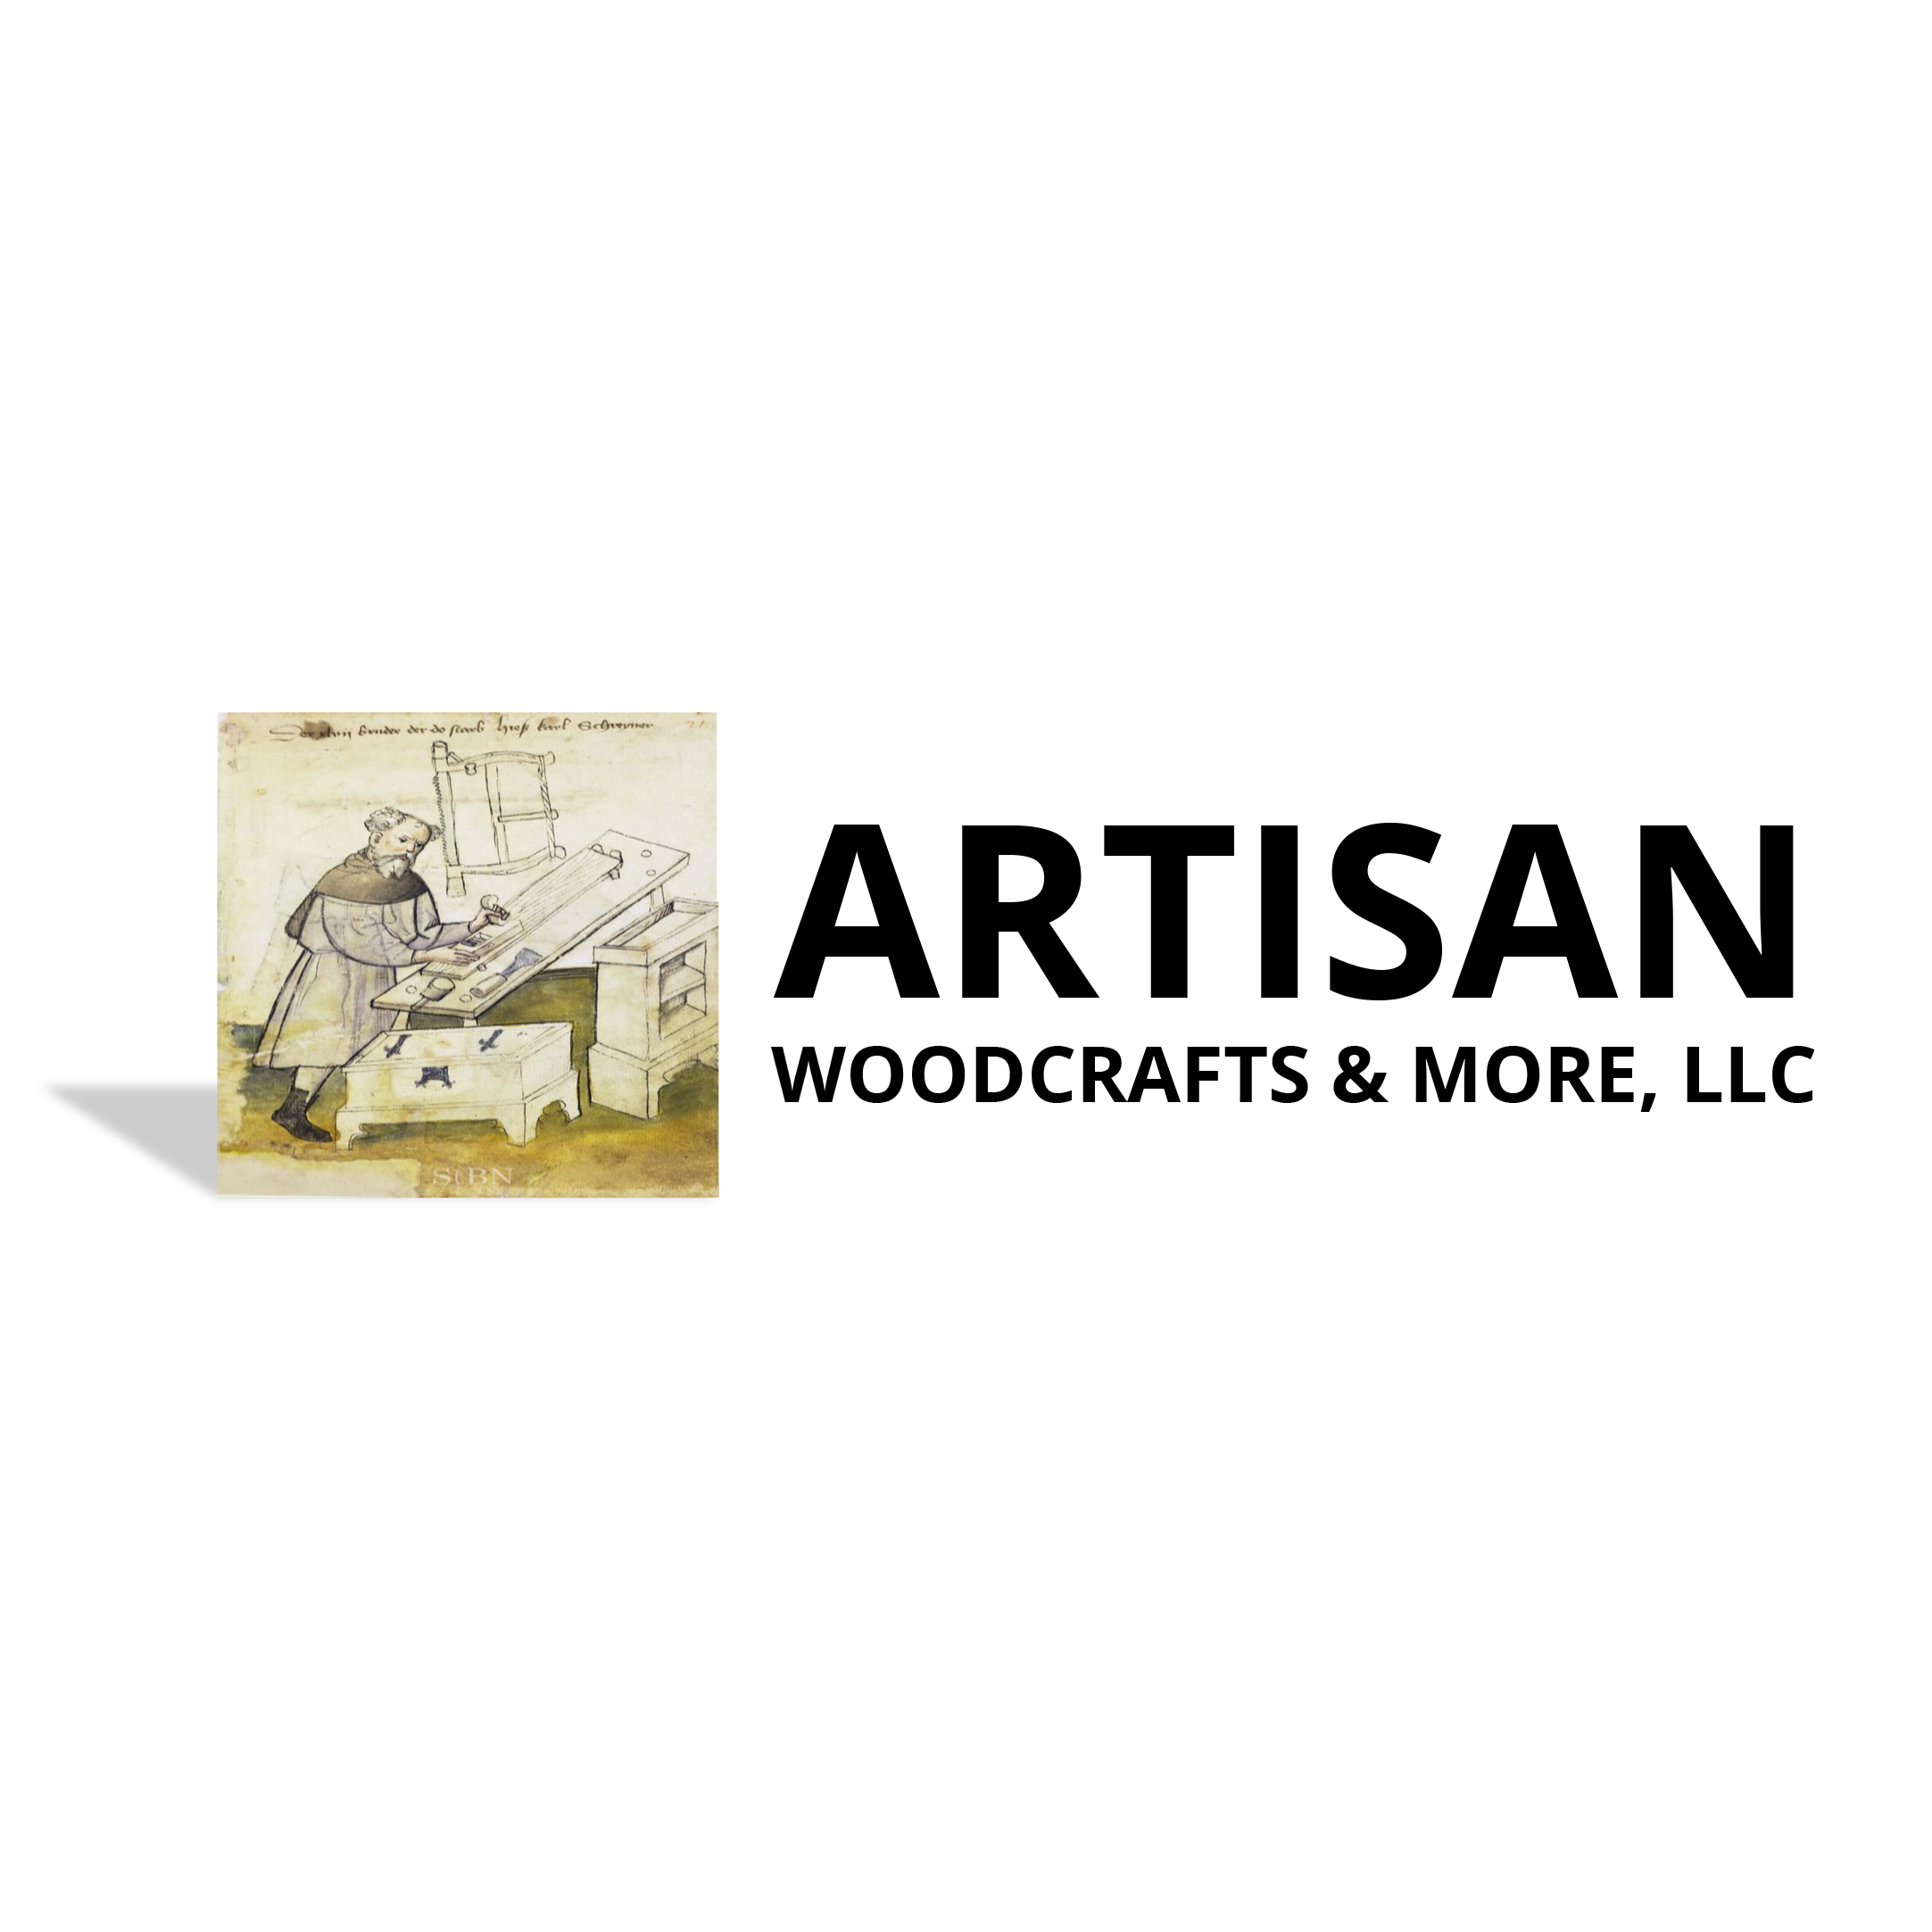 Artisan Woodcrafts & More, LLC